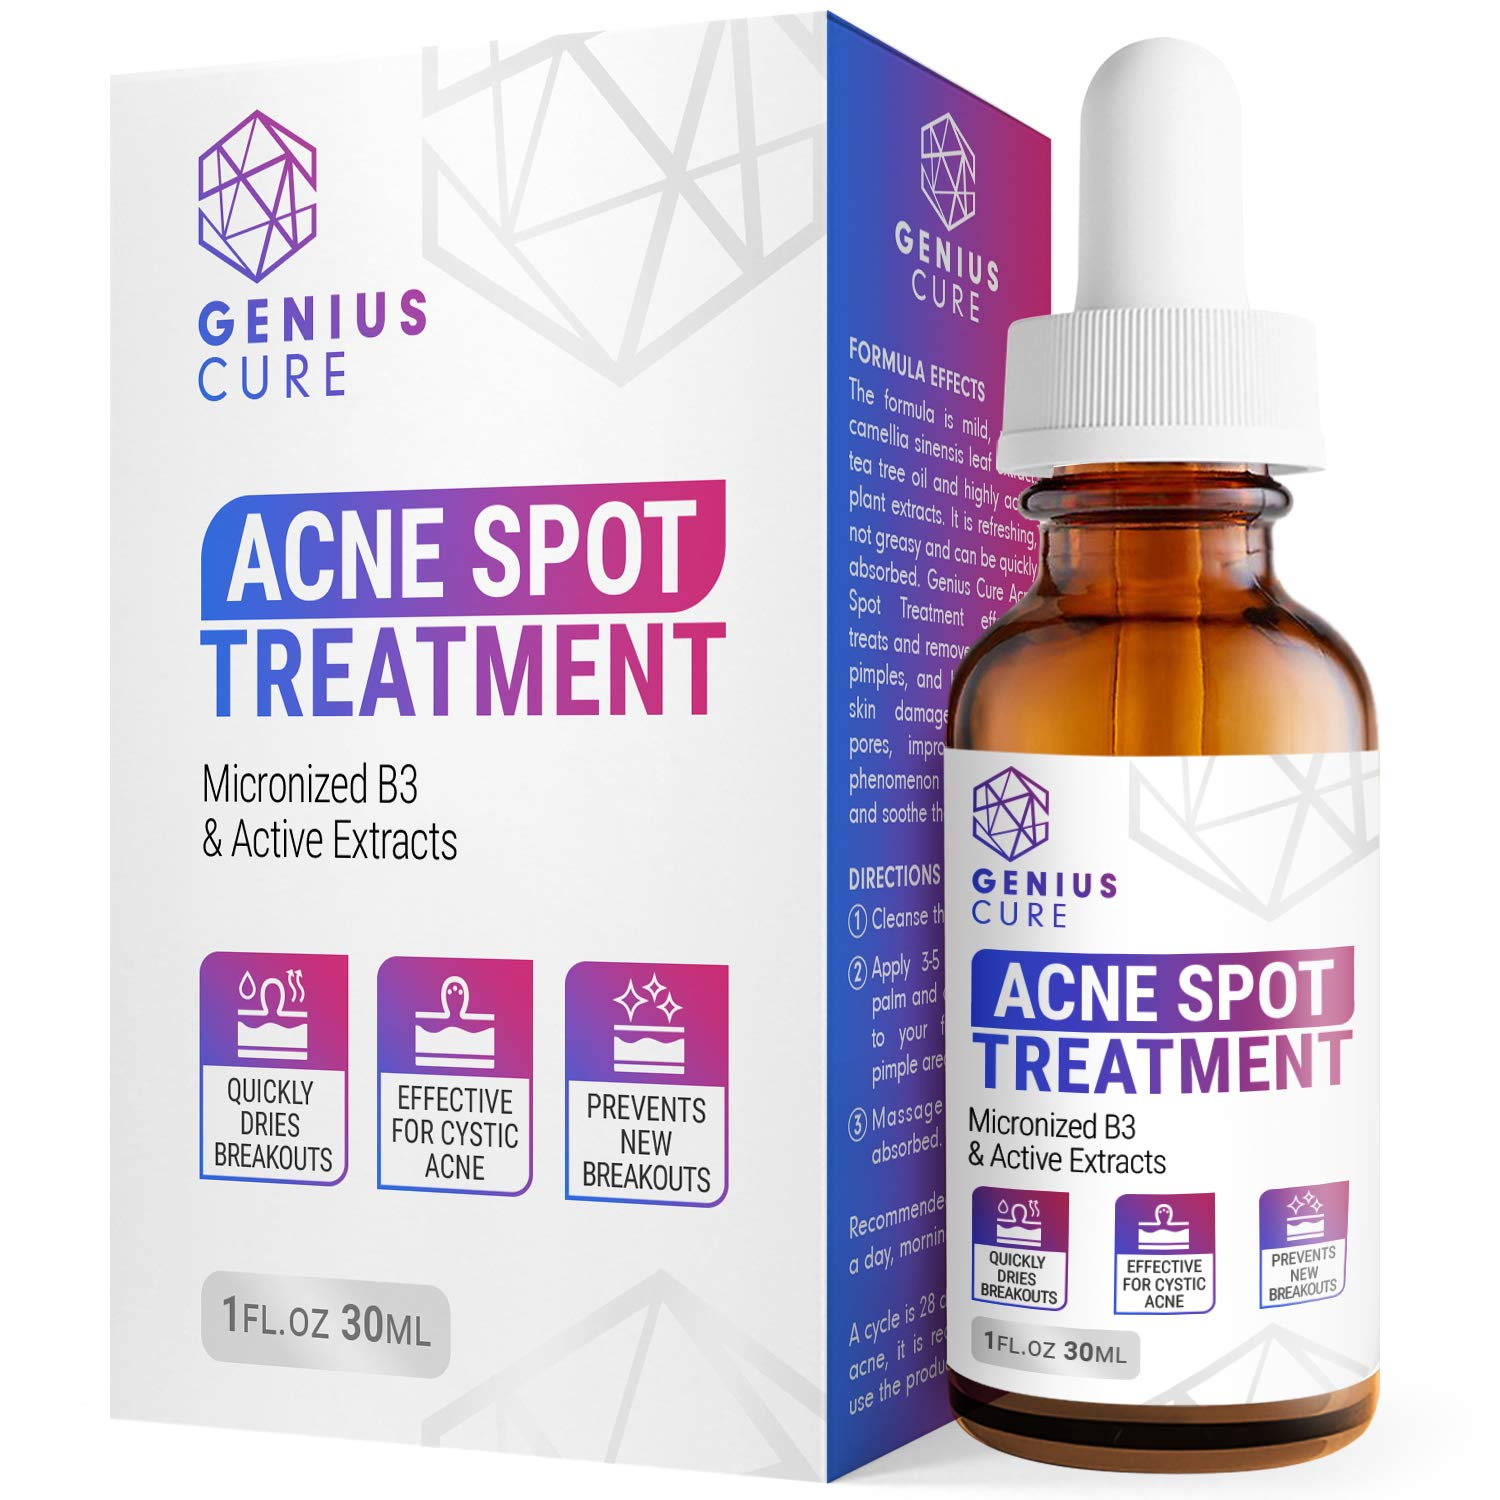 Amazon Com Genius Acne Spot Treatment Serum For Acne Prone Skin Mild Moderate Severe Cystic Acne Premium Tea Tree Oil Plant Extracts Vitamin E Prevent Future Breakouts 1fl Oz Beauty